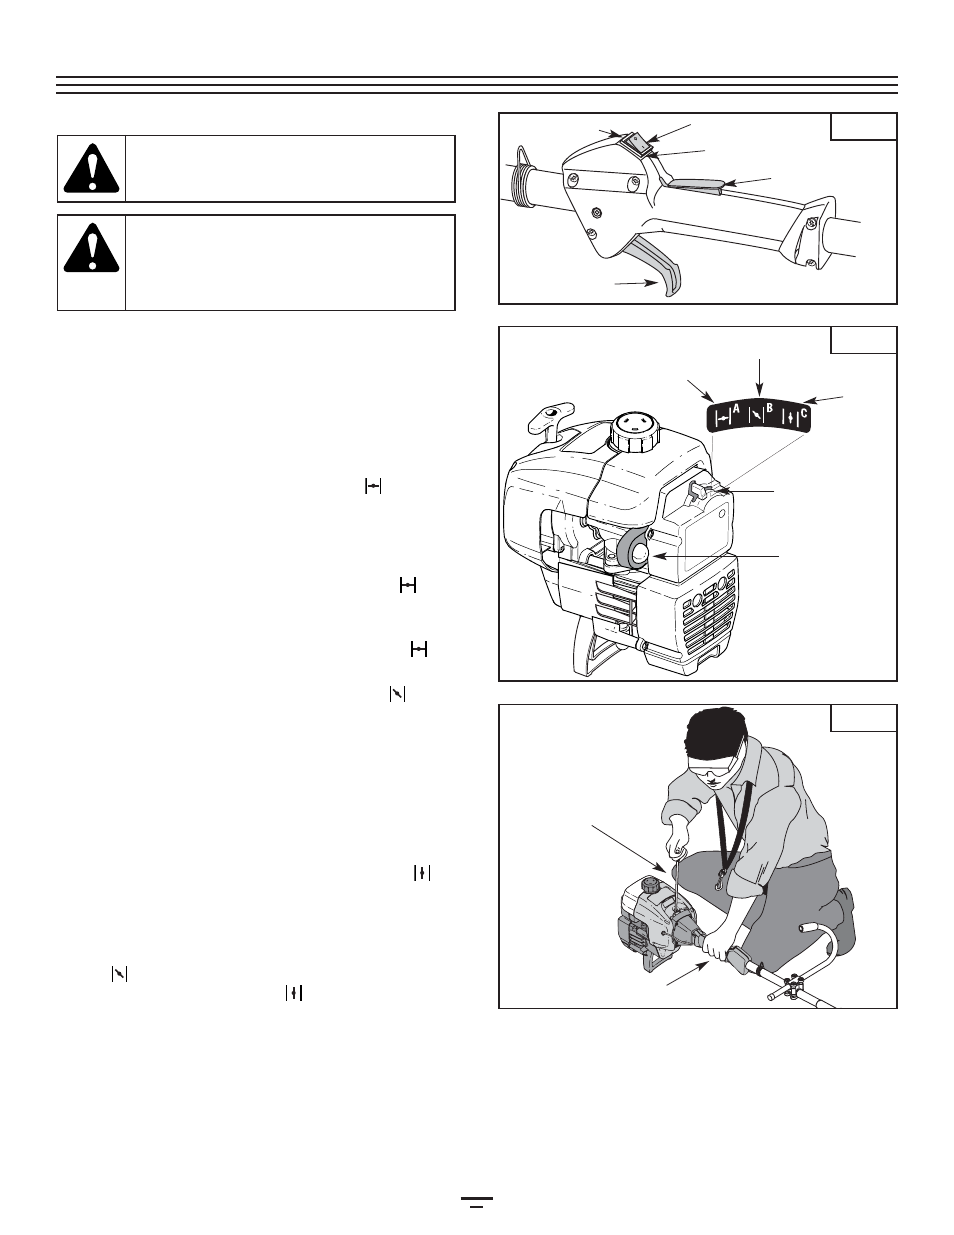 starting stopping instructions bolens bl250 user manual page 11 80 rh manualsdir com Bolens BL250 Trimmer Bolens BL250 Trimmer